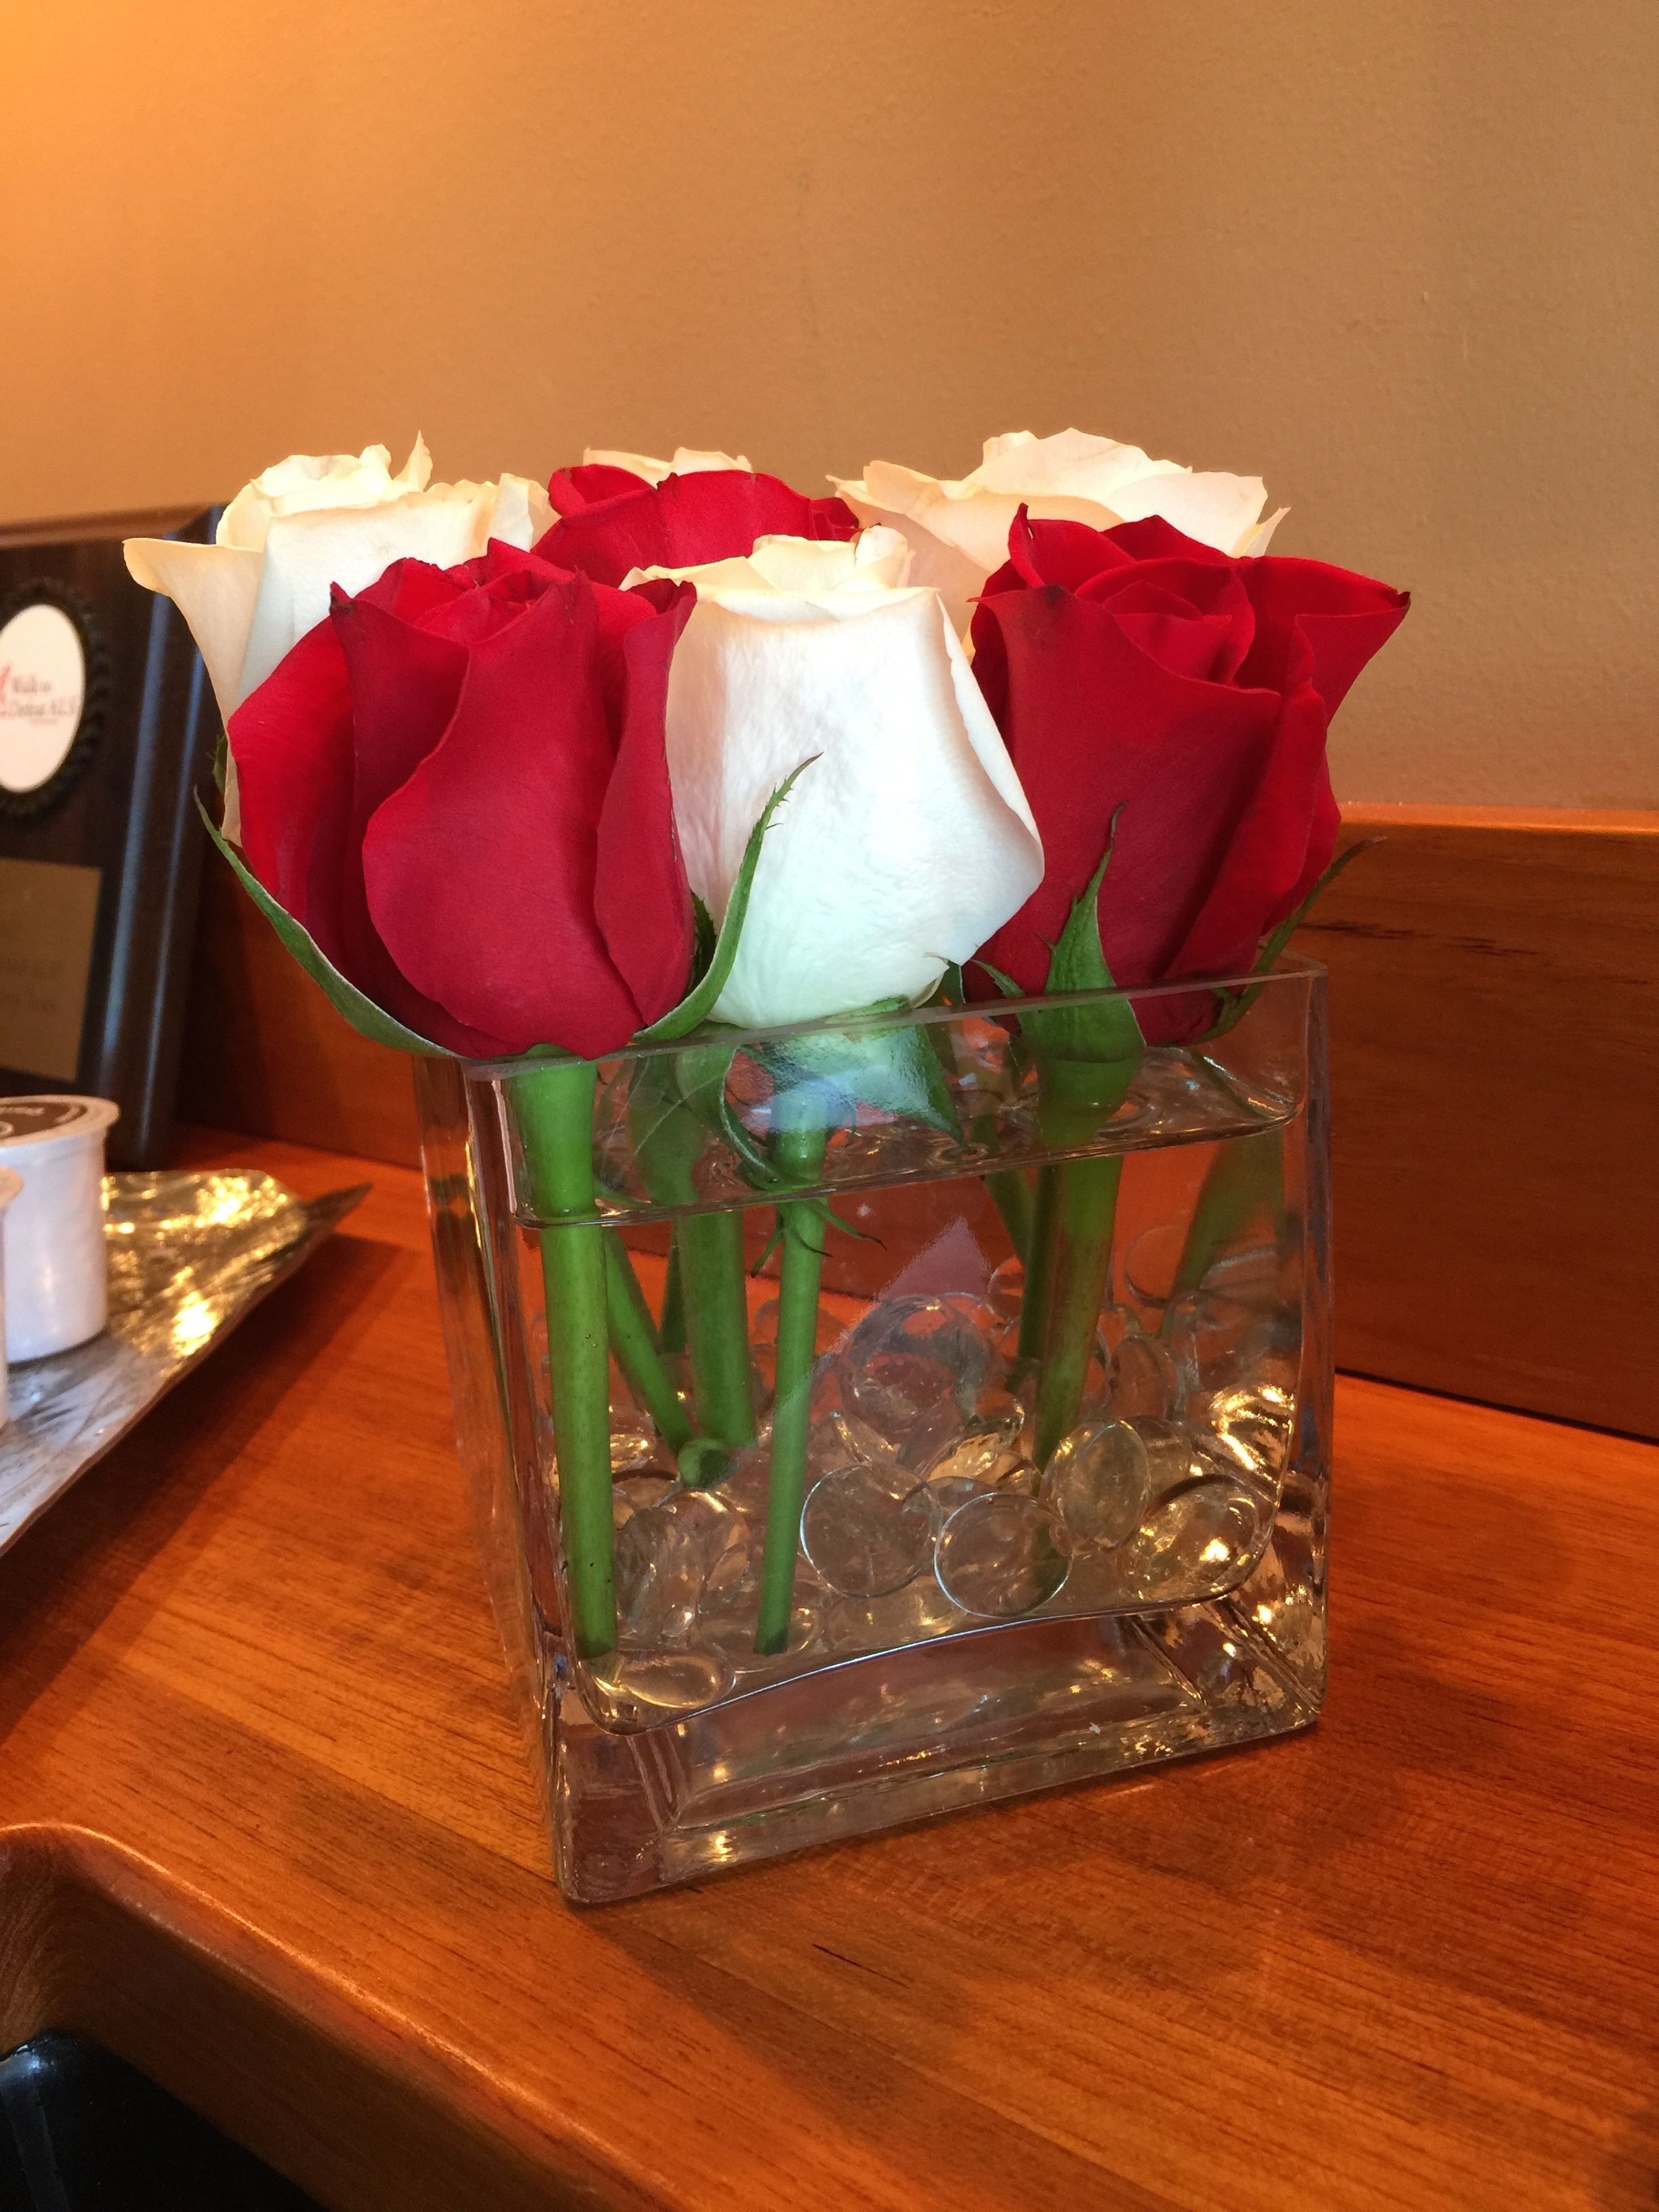 white roses in glass vase of re and white roses in a 4x4 square vase with clear glass beads pertaining to re and white roses in a 4x4 square vase with clear glass beads from an evening of hope to benefit the als assoc dc md va chapter